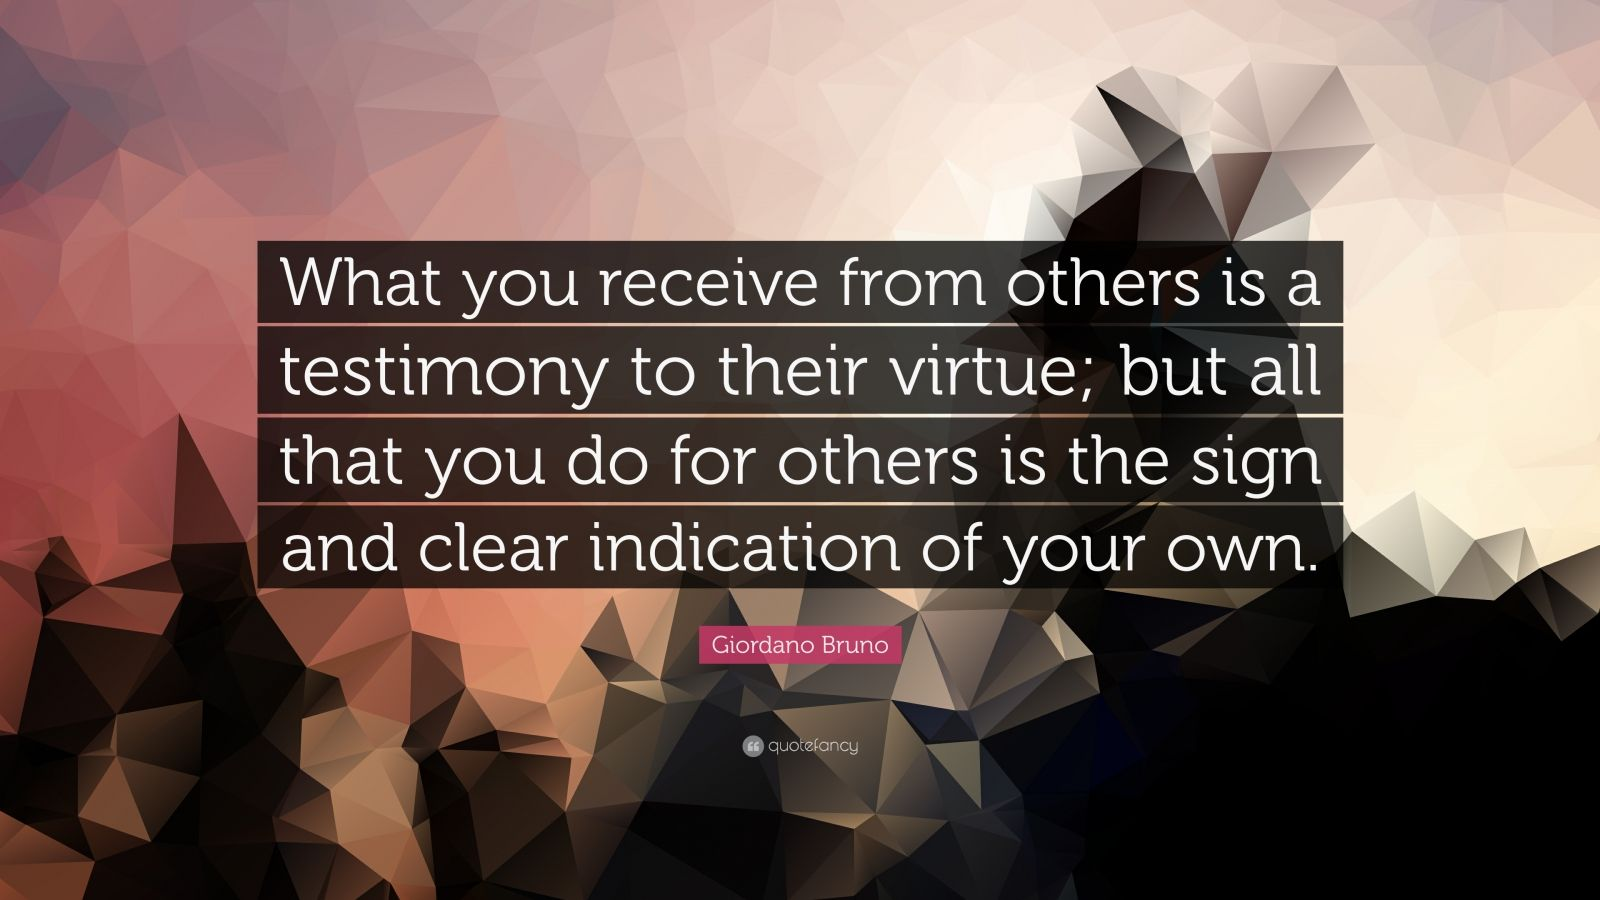 """Giordano Bruno Quote: """"What you receive from others is a testimony to their virtue; but all that you do for others is the sign and clear indication of your own."""""""